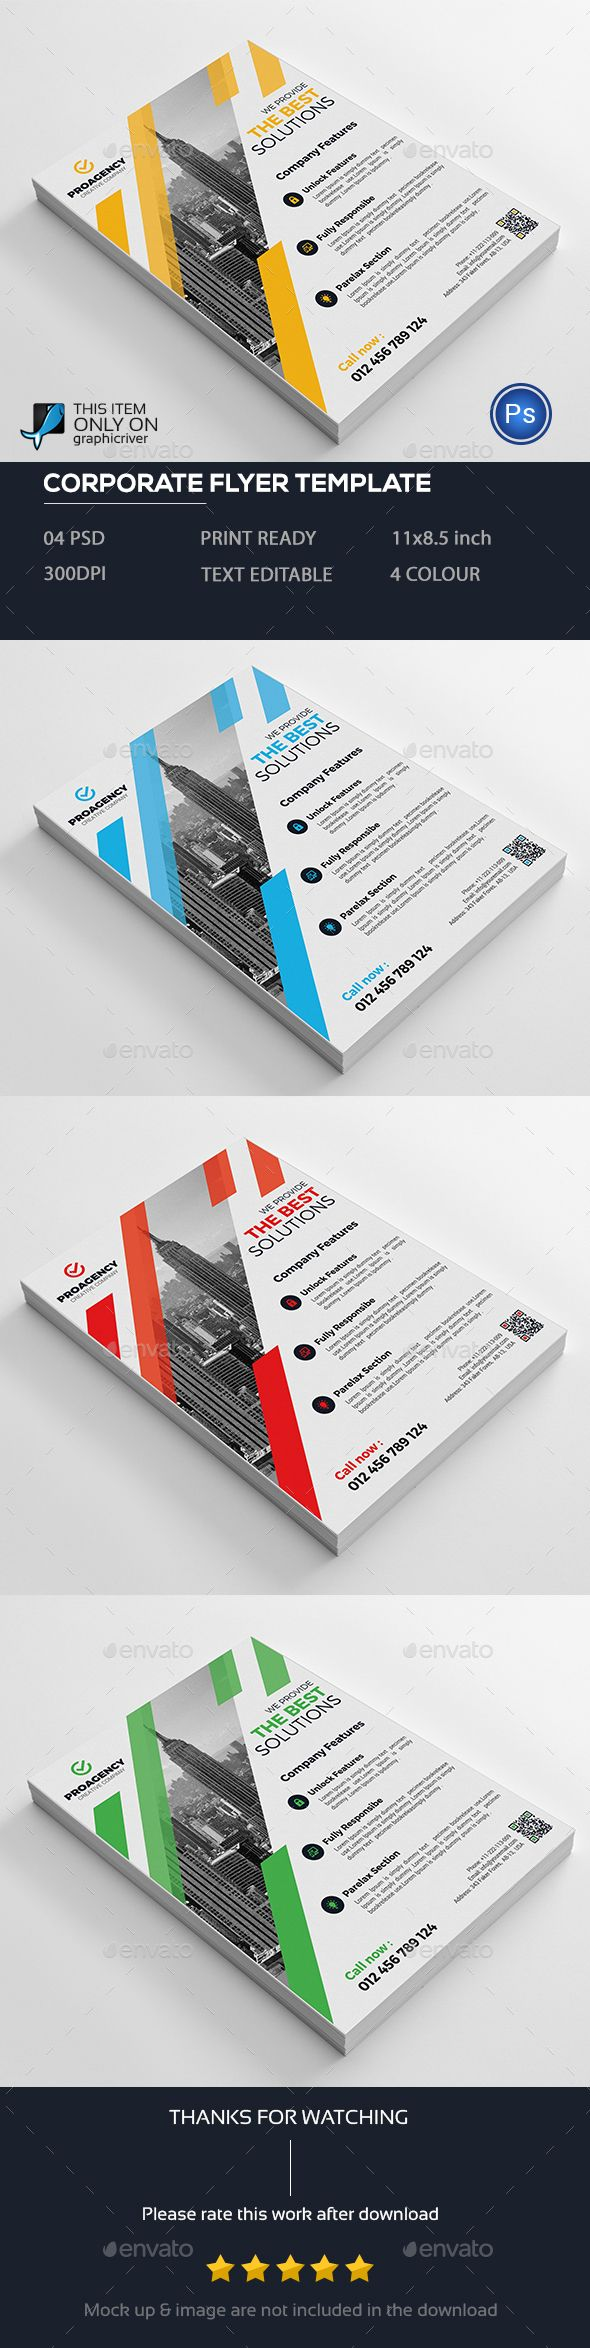 756 best images about brochure flyer inspiration on pinterest behance flyer template and - Corporate flyer inspiration ...